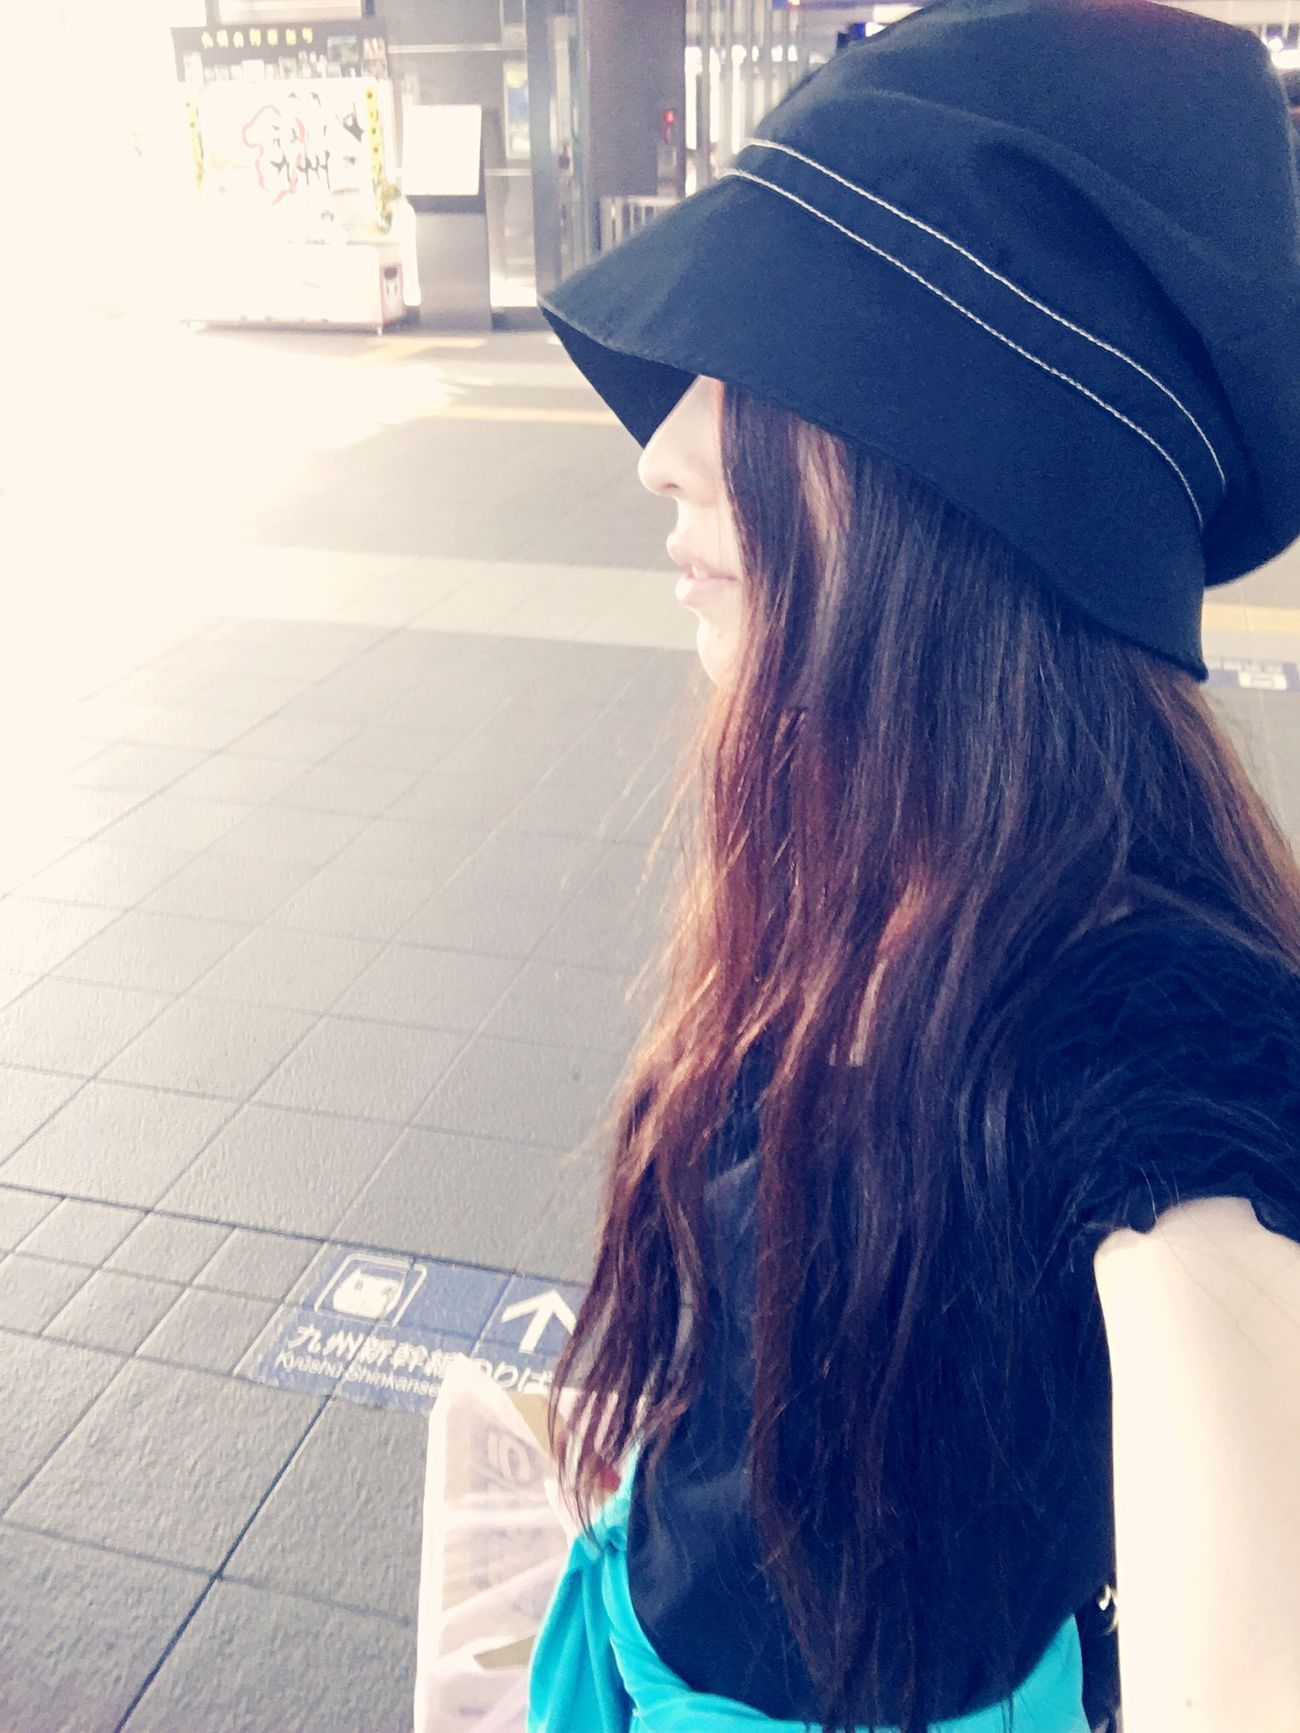 ブドウを持つ人。 JustMe Selfie ✌ Going Home Train Station Myface